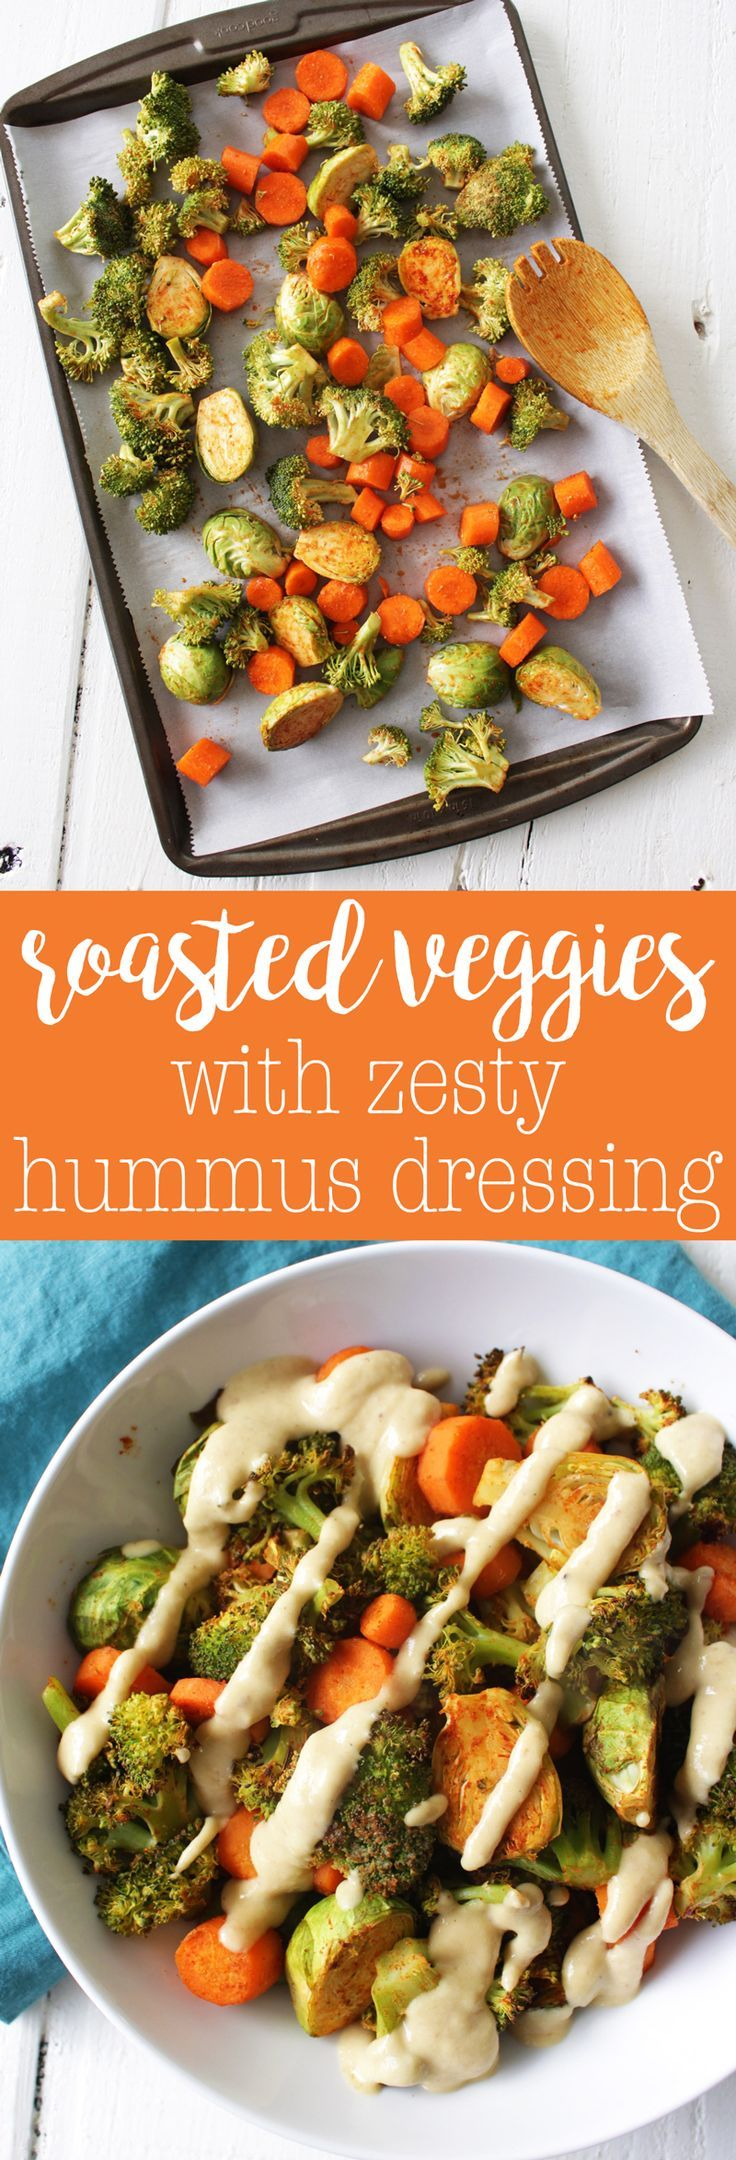 Roasted Veggies with Zesty Hummus Dressing - easy vegan side dish or lunch! Perfect for meal prepping and SO TASTY. | HCLF Vegan | Oil-free via @thecrunchychron